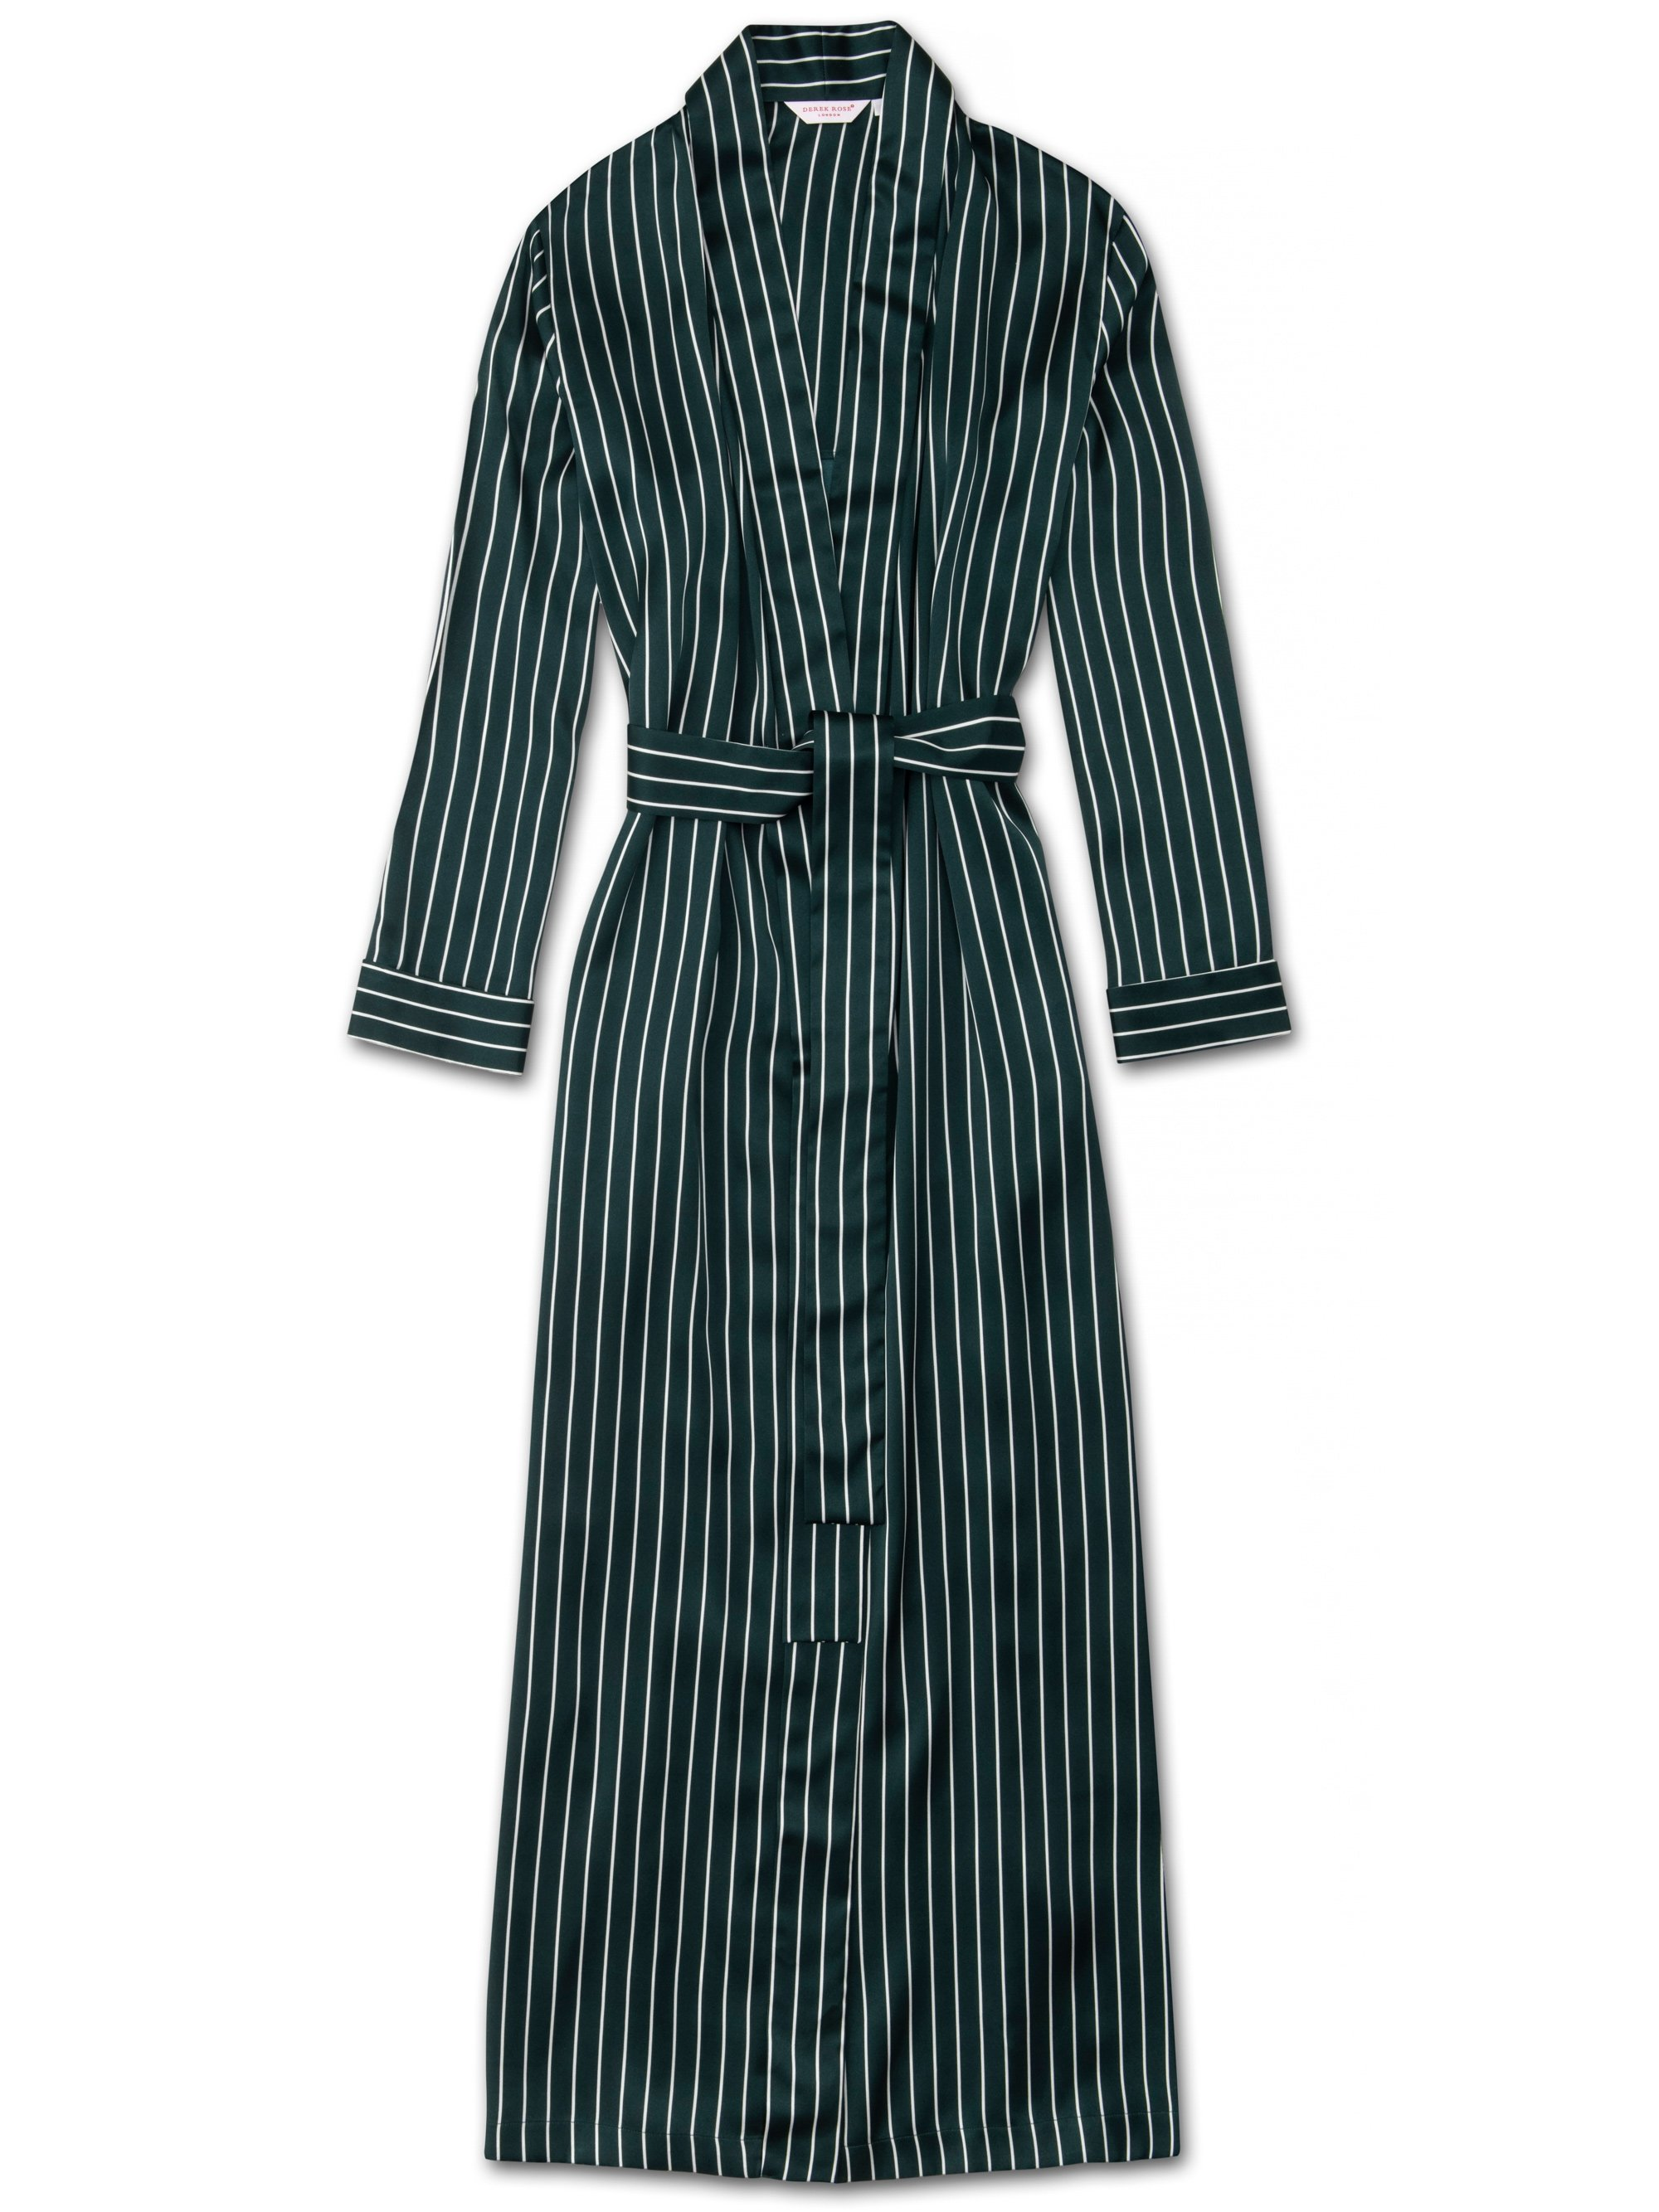 Women's Full Length Dressing Gown Brindisi 55 Pure Silk Green